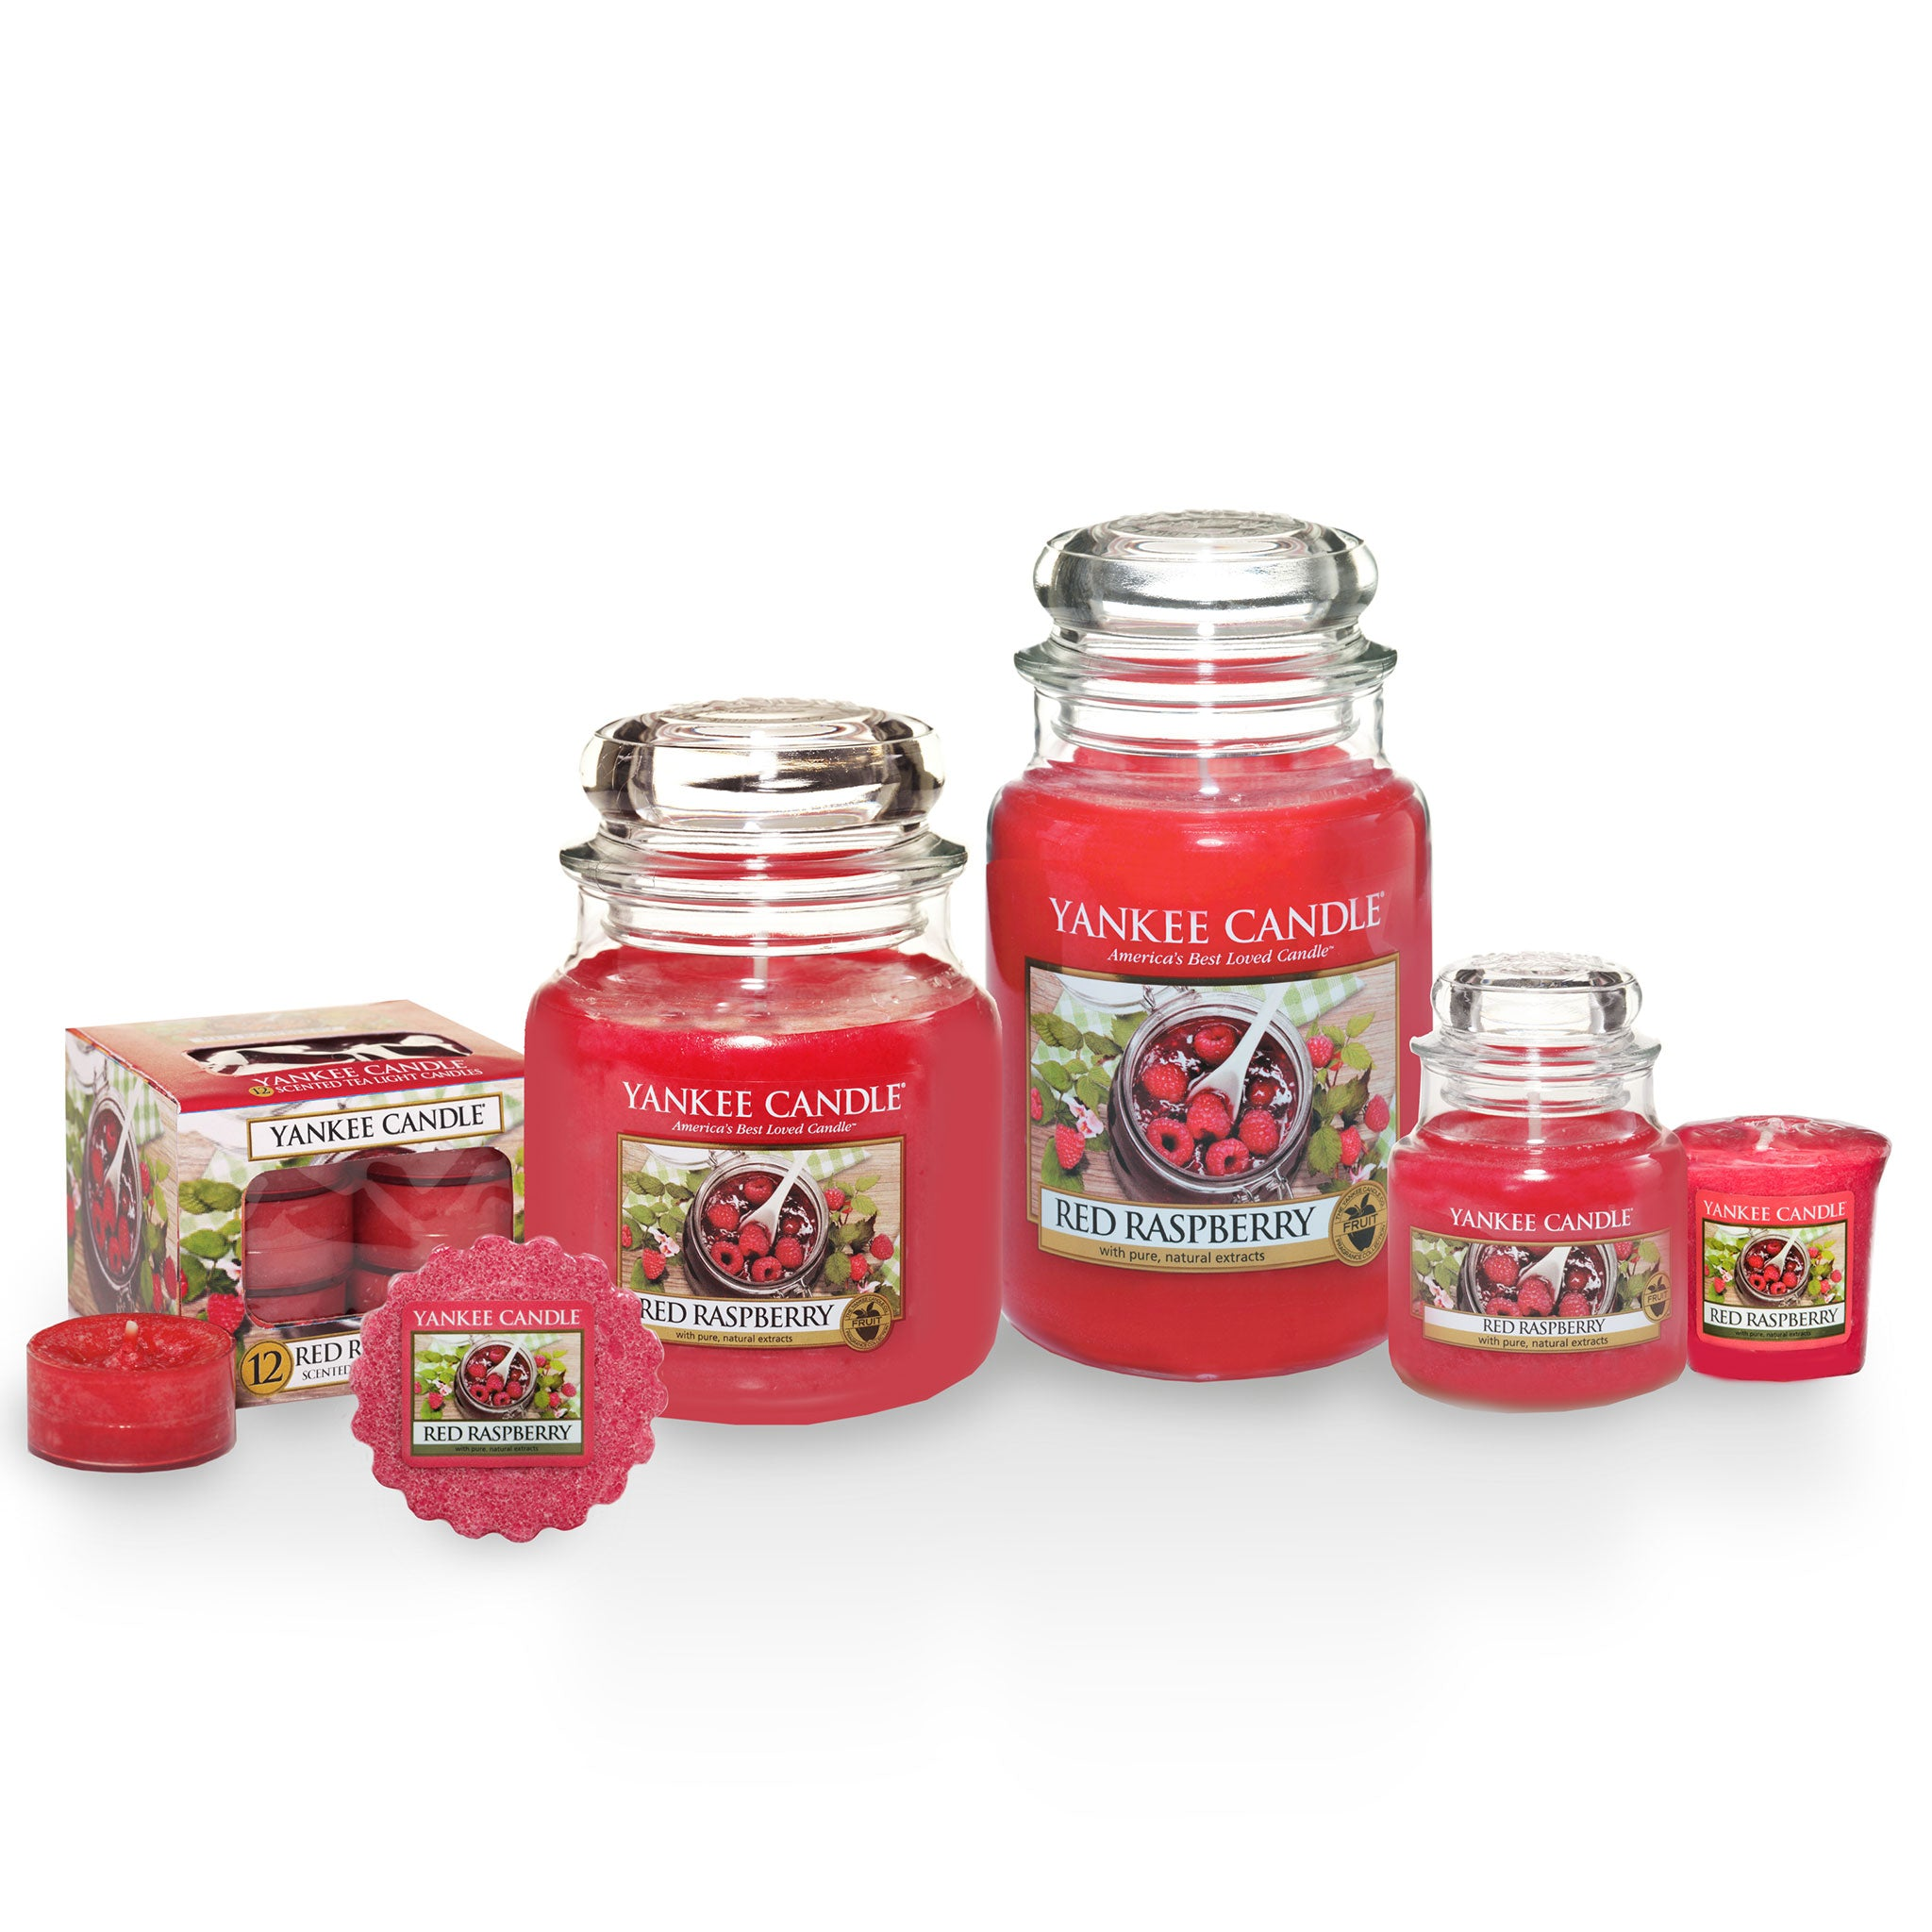 RED RASPBERRY -Yankee Candle- Giara Media